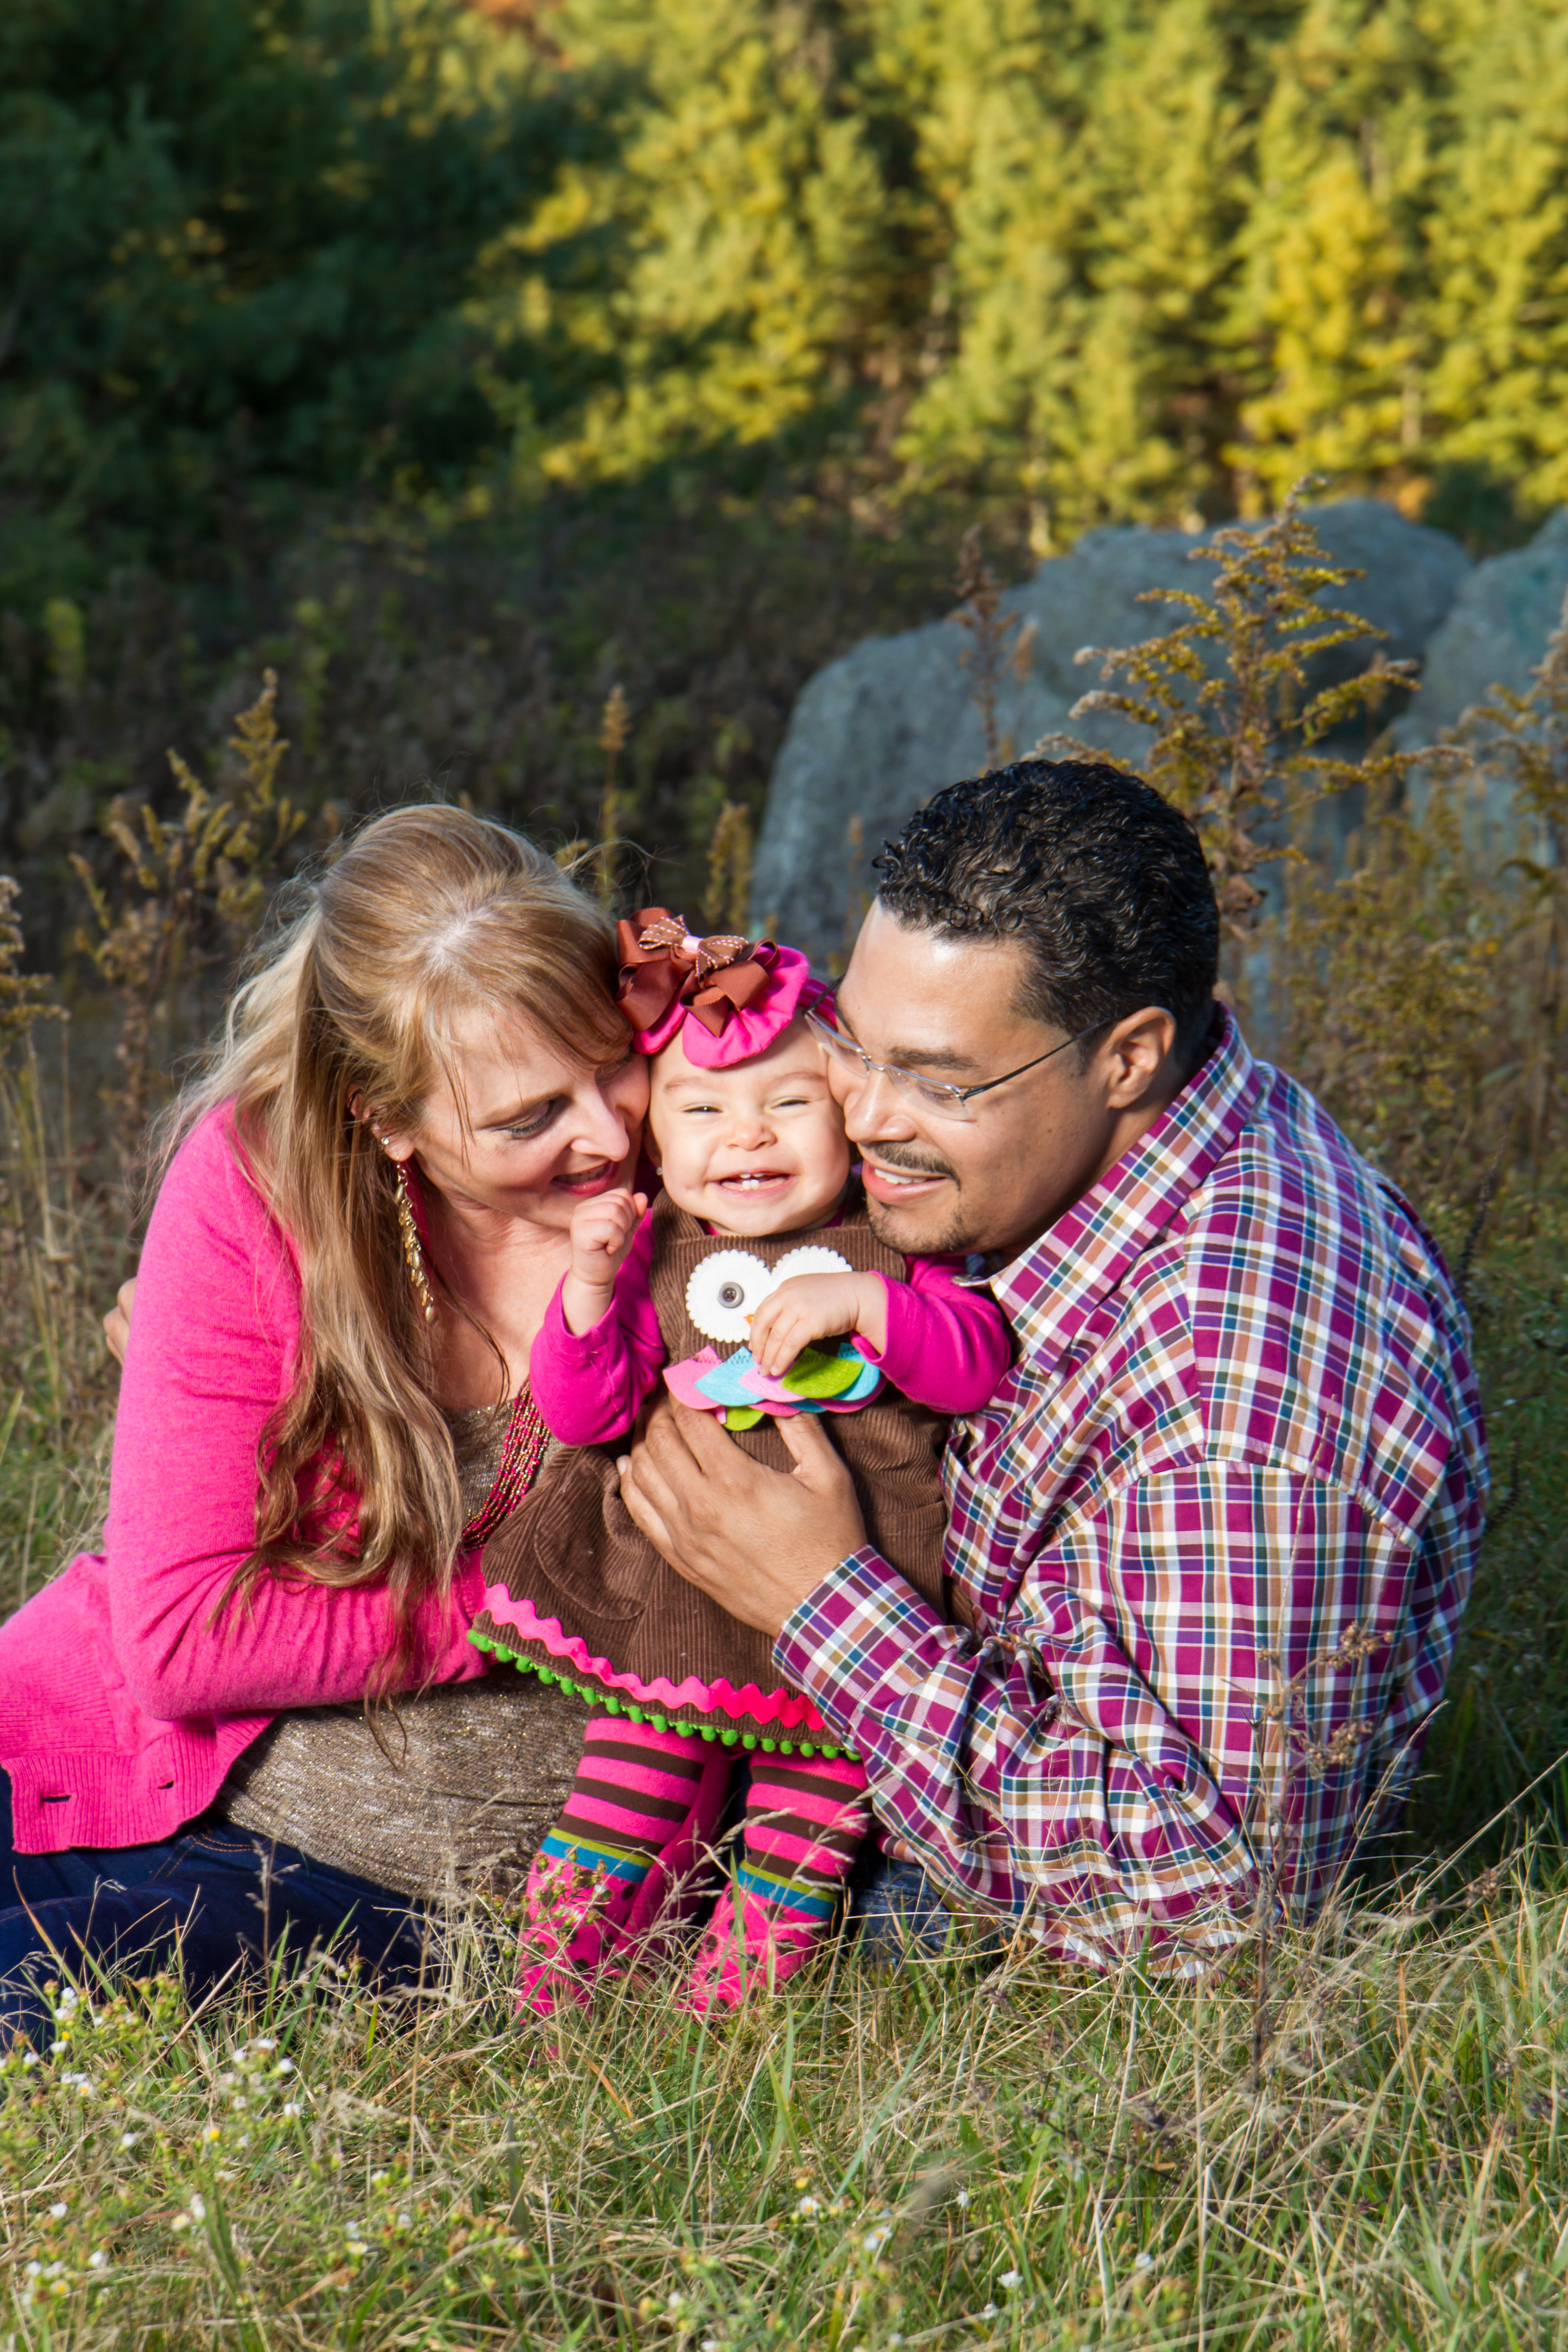 Pixels On Paper Boone, Blowing Rock, Jefferson, Wilkesboro, NC Mountain photographers outdoor fall family, child, engagement portrait photography photo